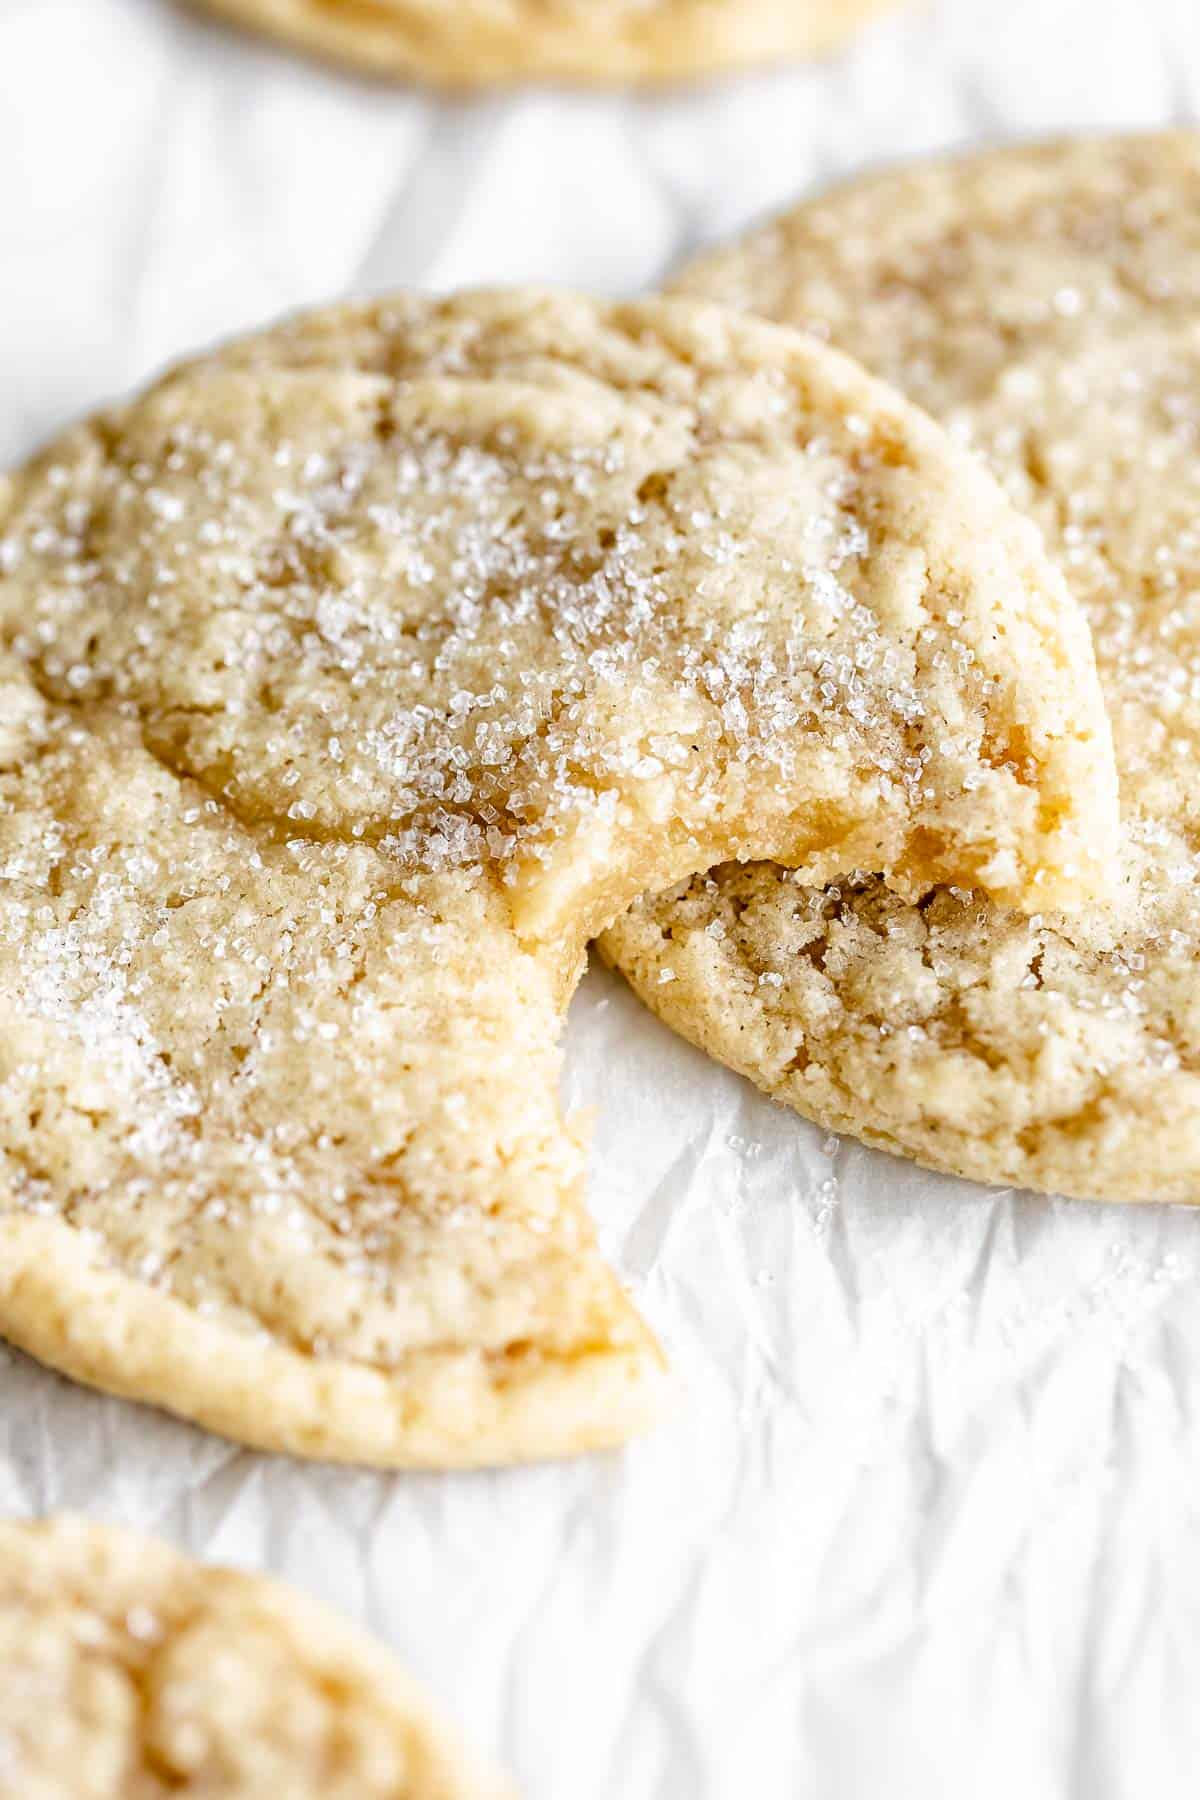 gluten free sugar cookies with a bite taken out to show texture